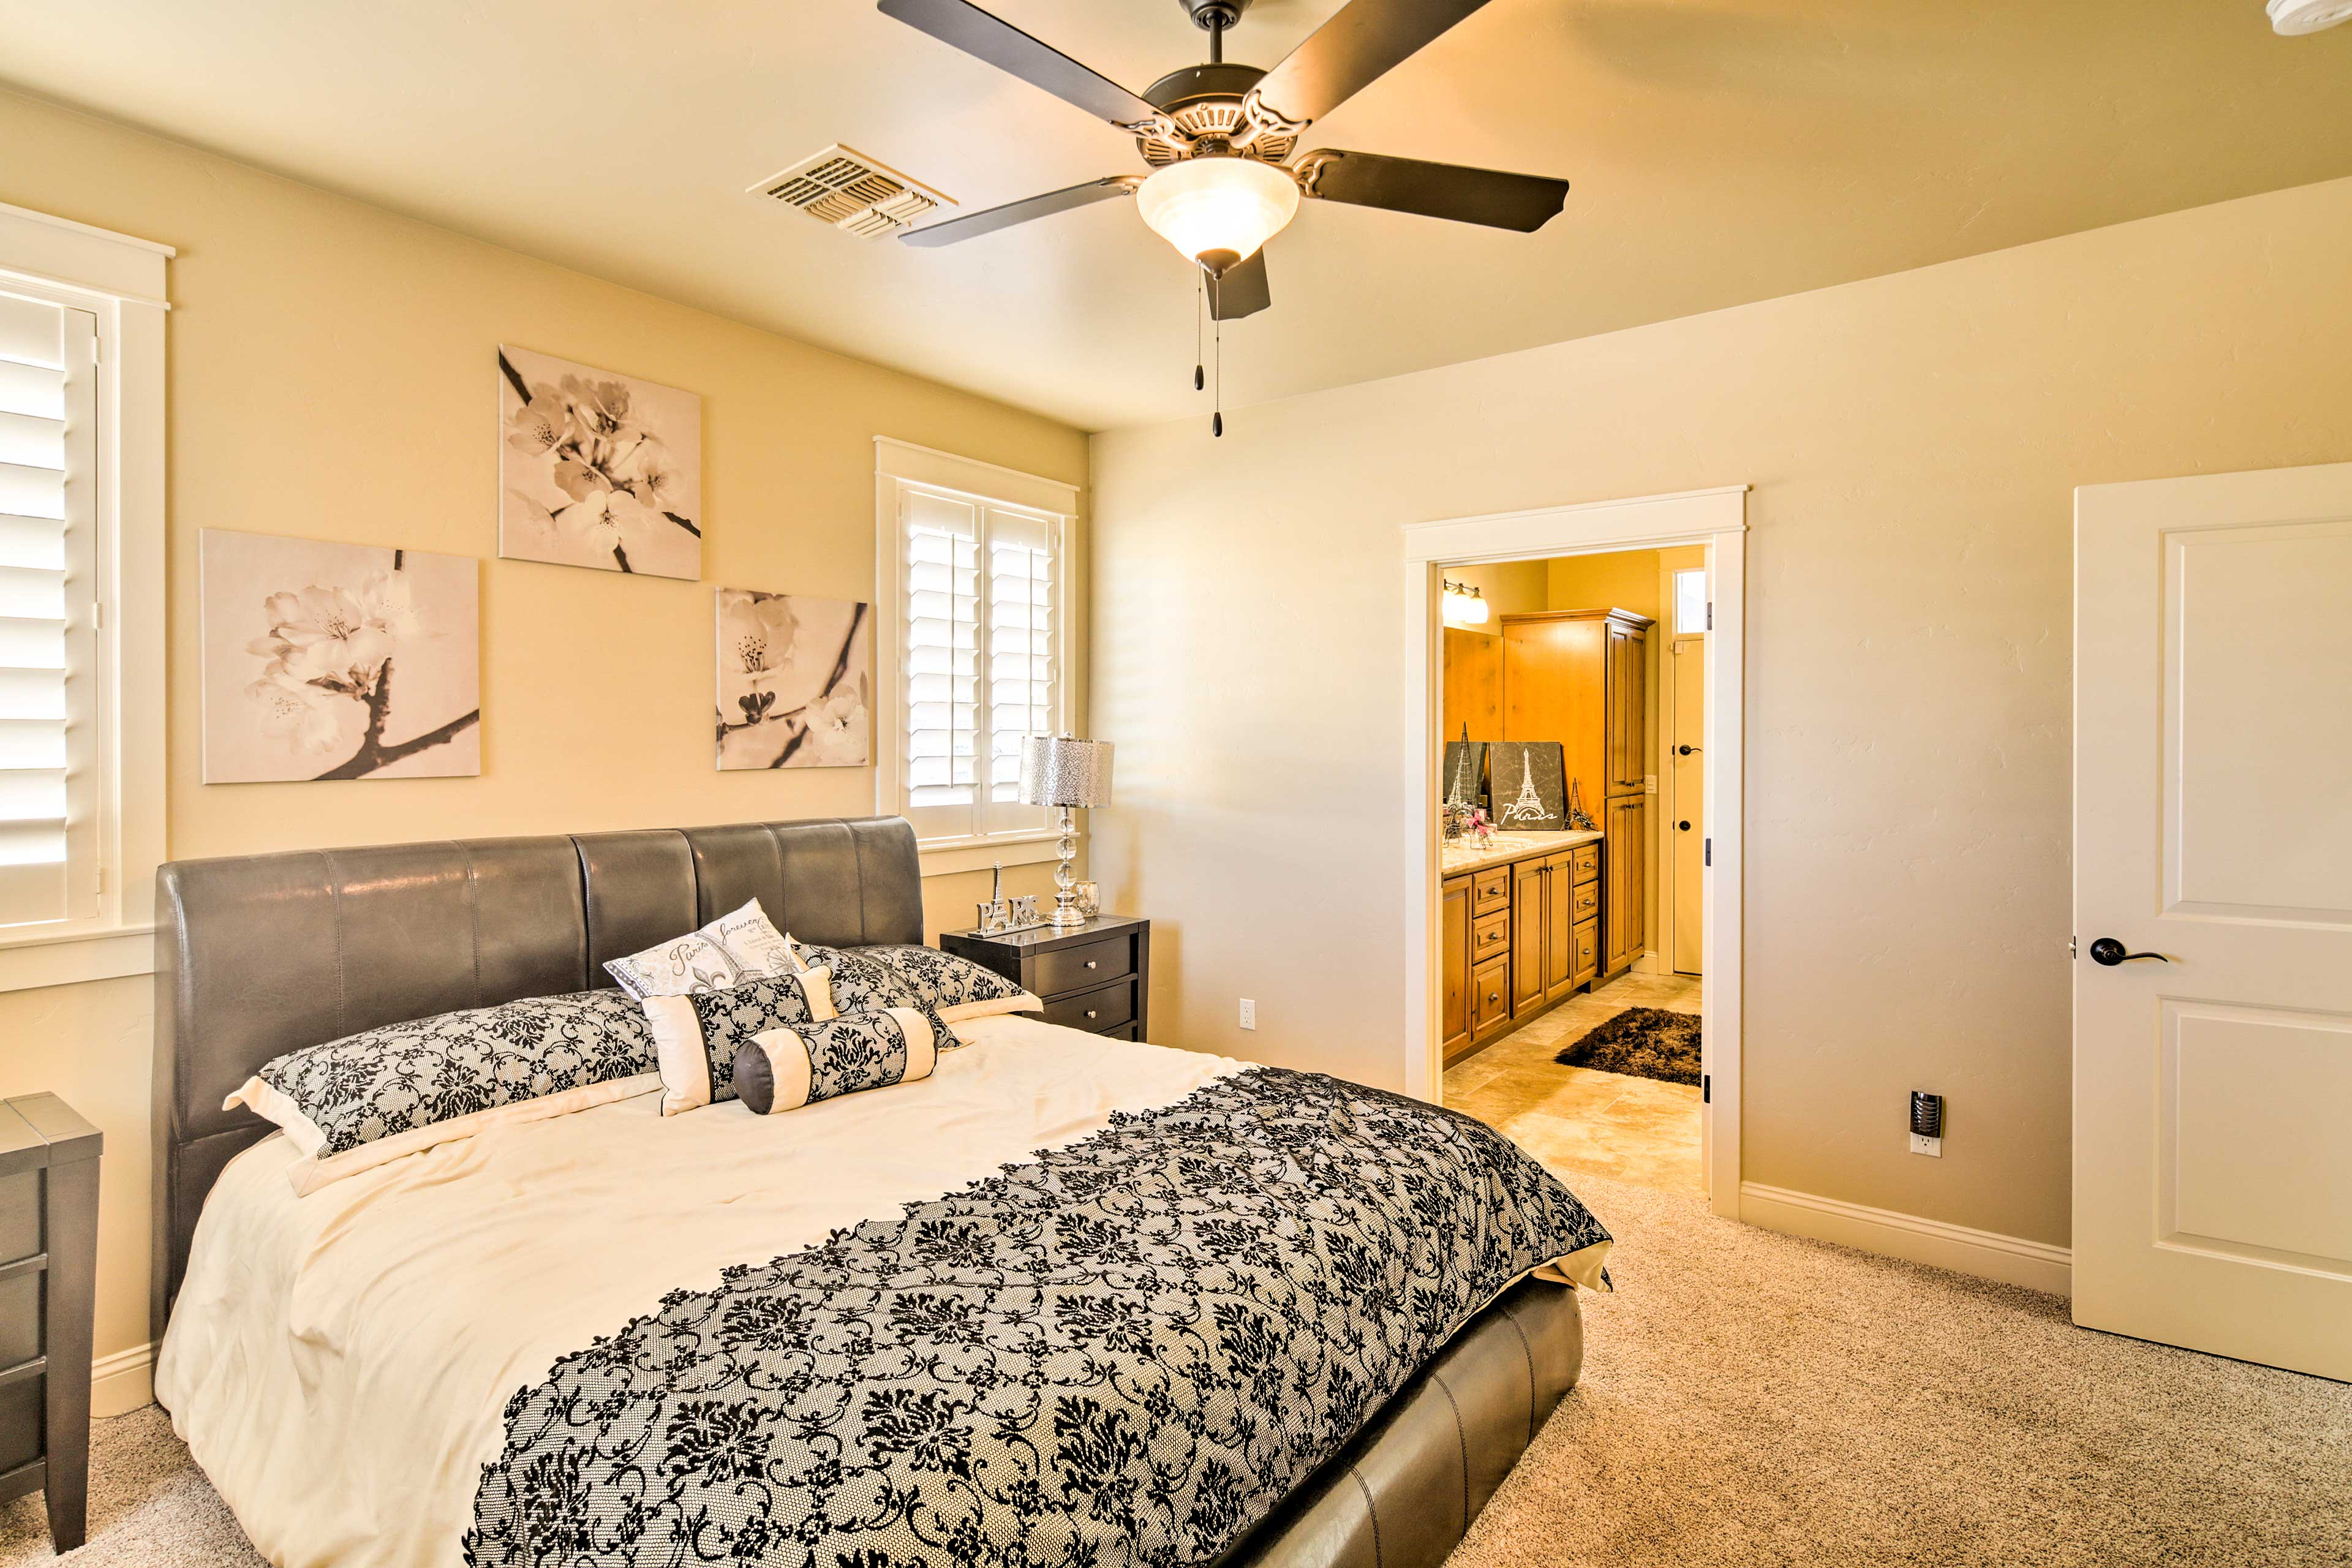 Another king bed is available in the second master bedroom.